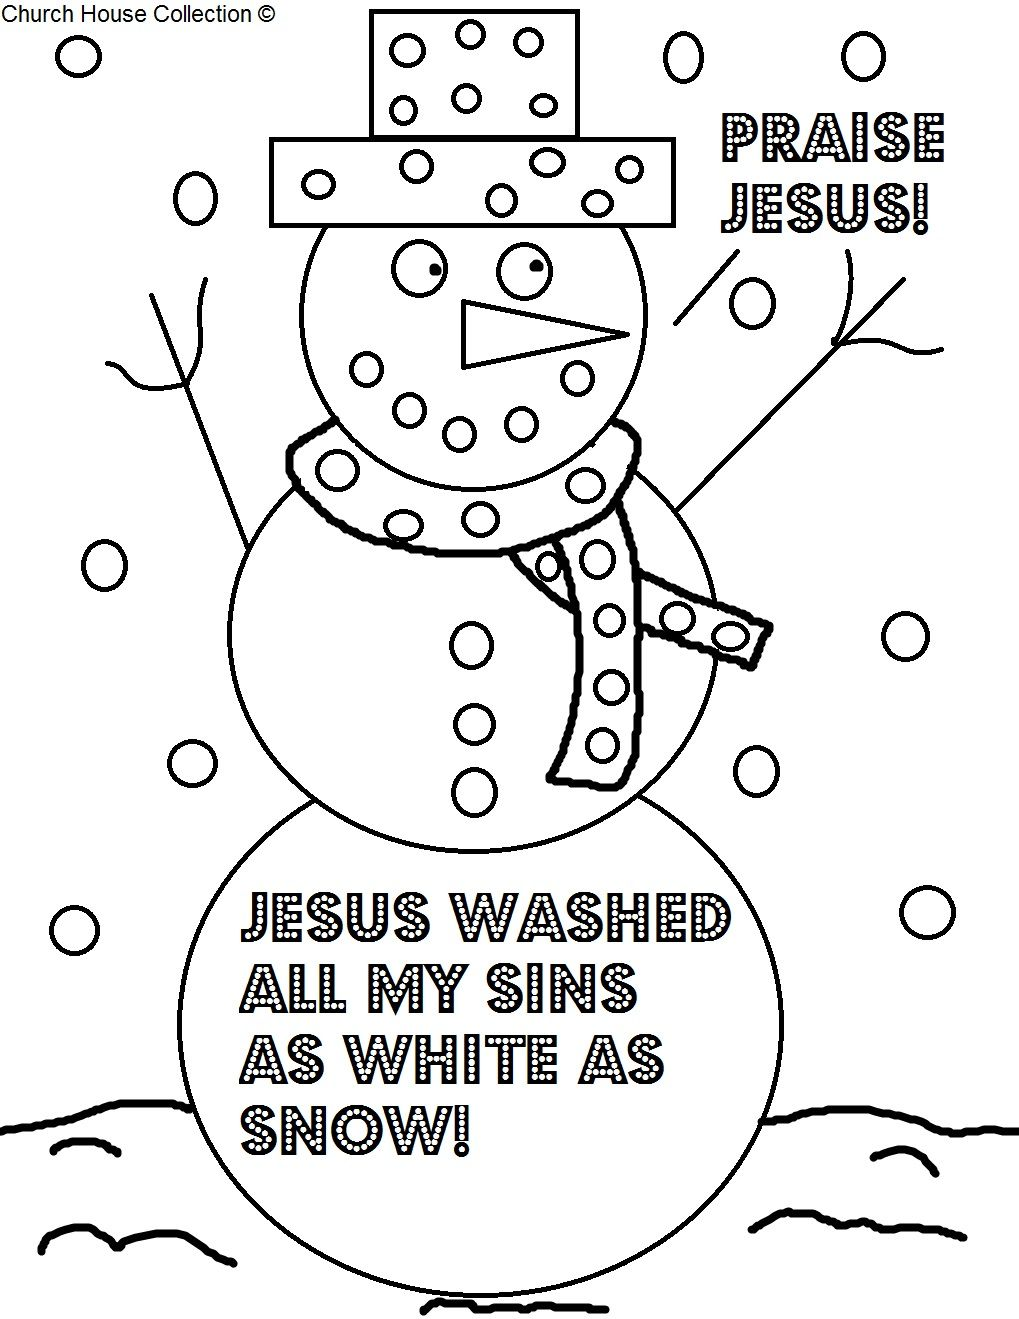 Christmas Colouring Pages For School With Church House Collection Blog Coloring Page Sunday